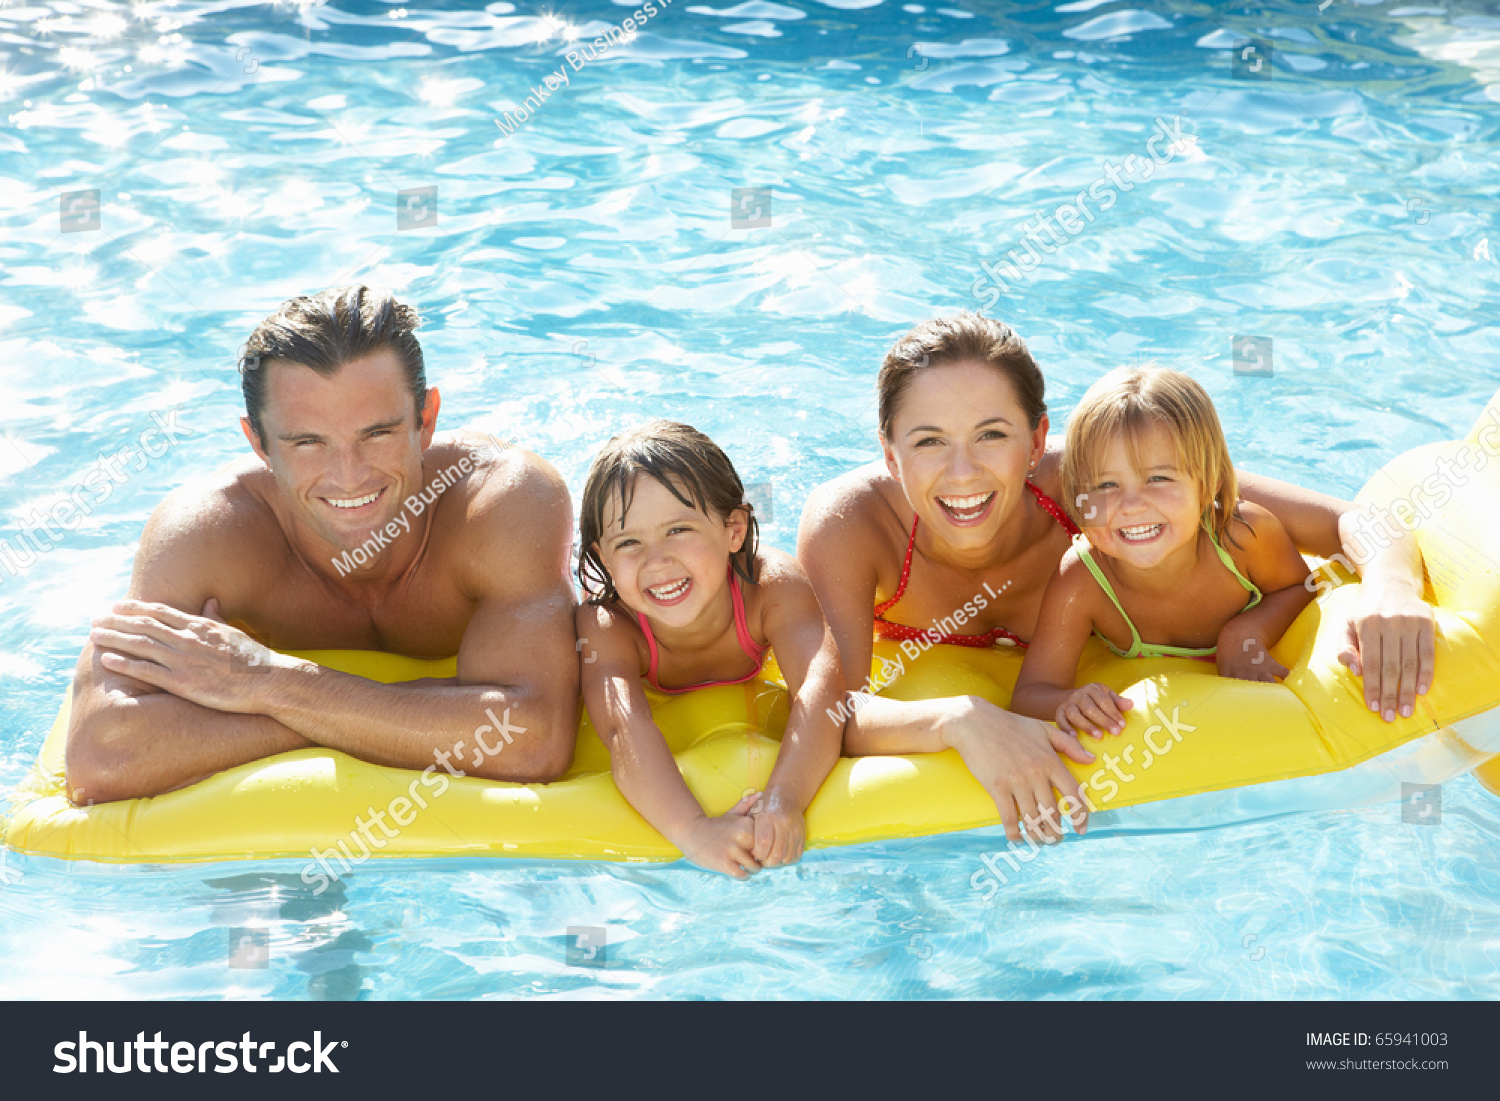 Nudist children Young family, parents with children, in pool